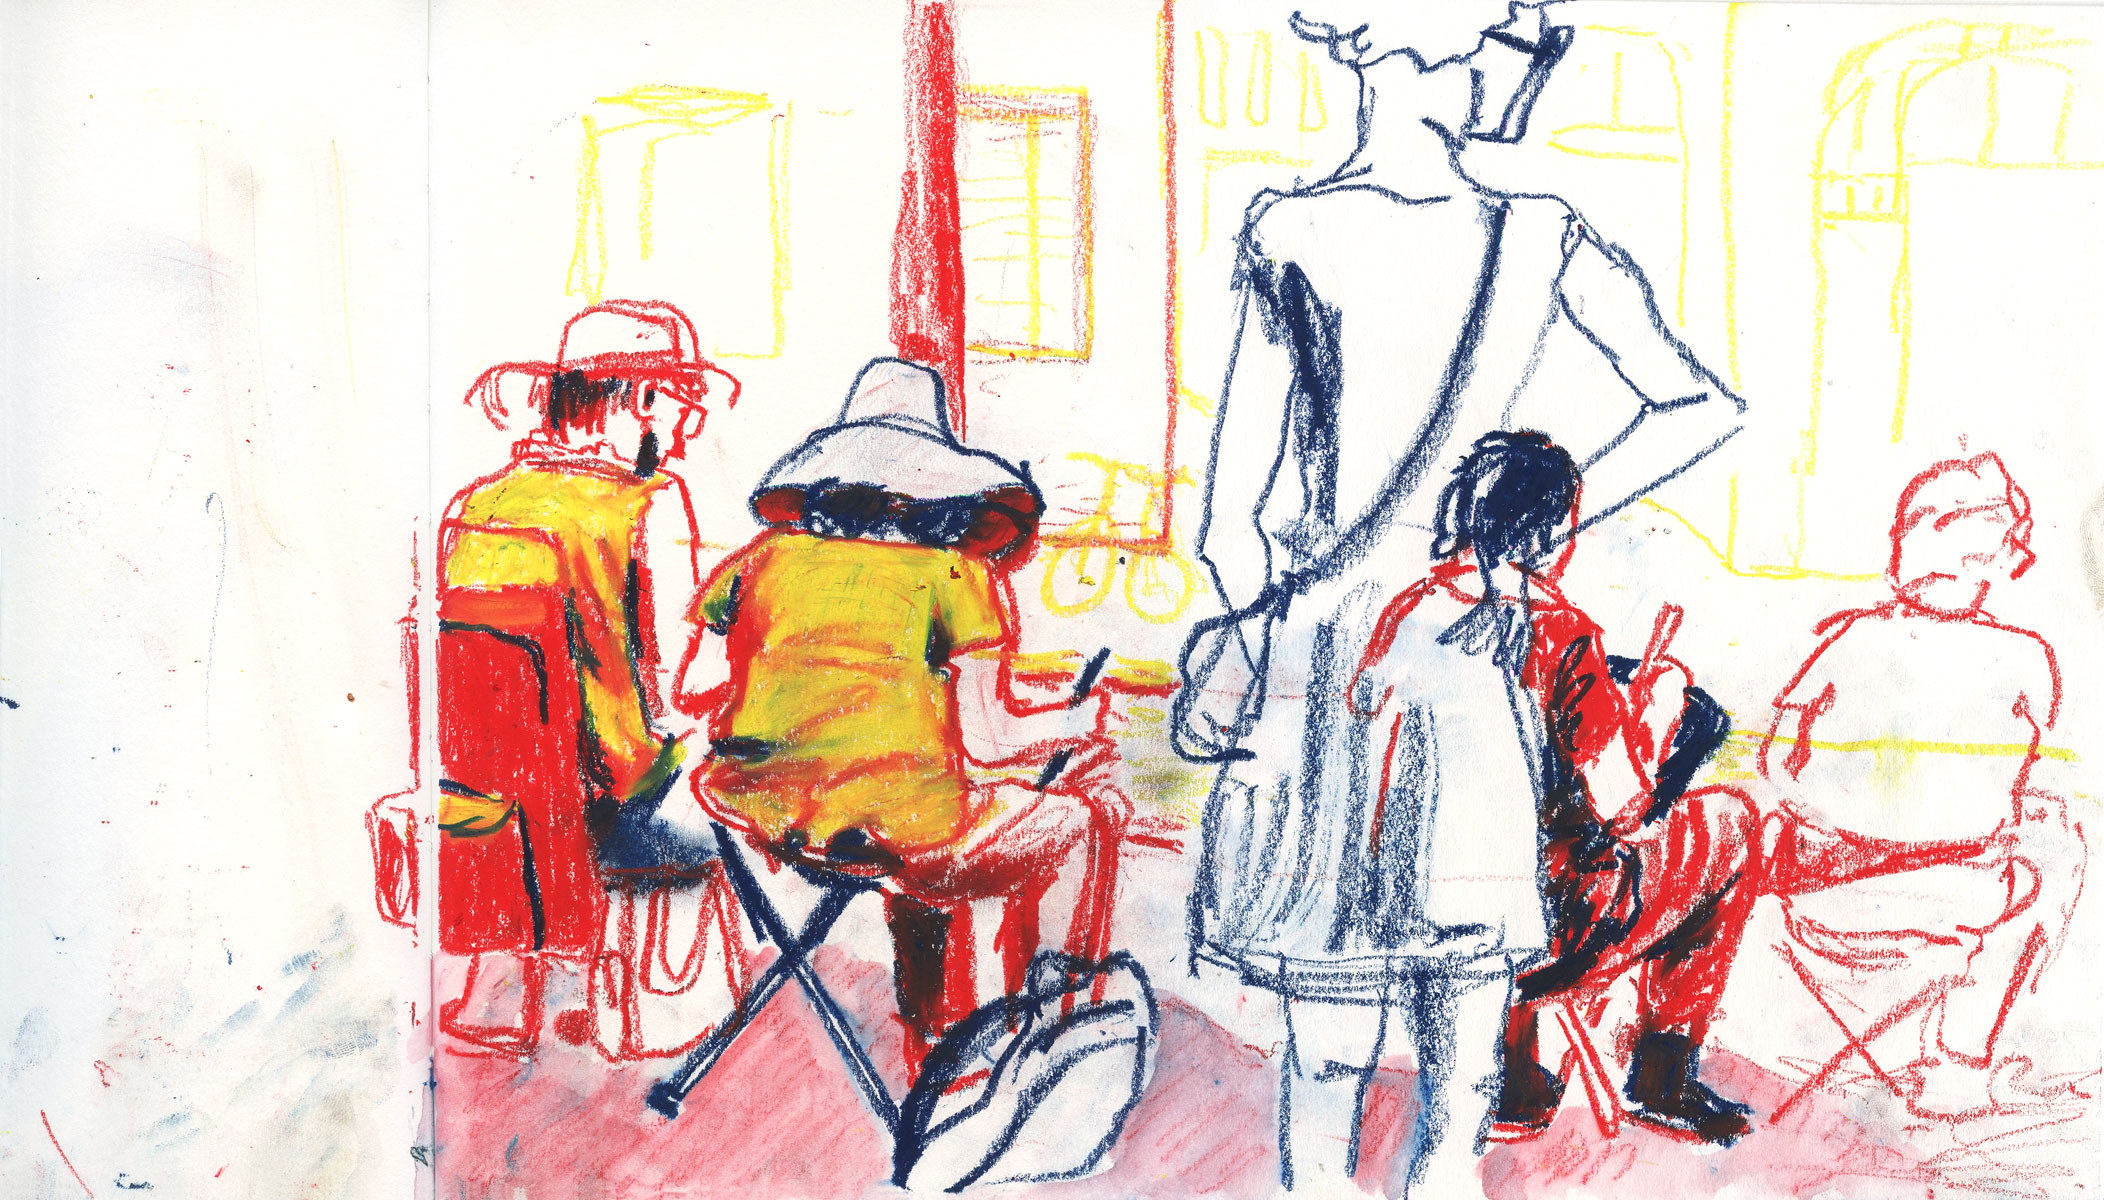 Illustration of Urban Sketchers at Amsterdam by Ellen Vesters picture book illustrator